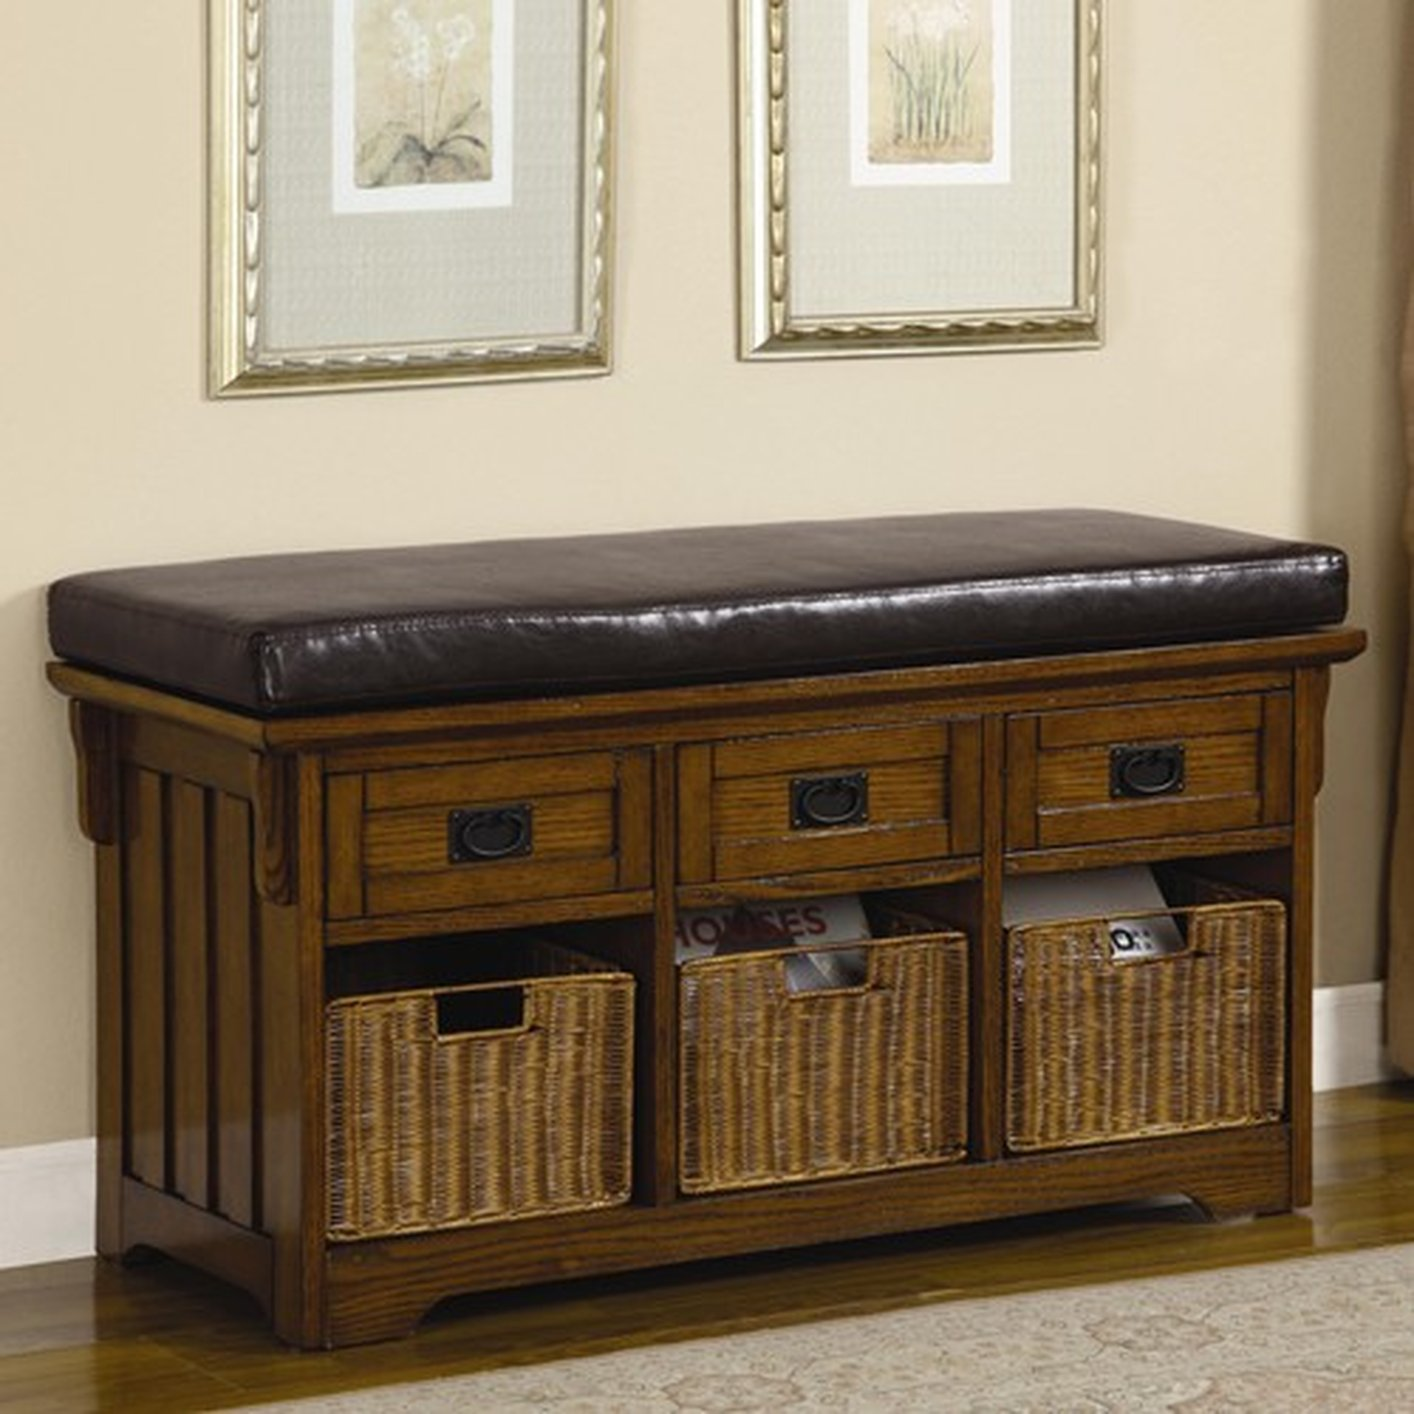 Brown Leather Storage Bench & Brown Leather Storage Bench - Steal-A-Sofa Furniture Outlet Los ...